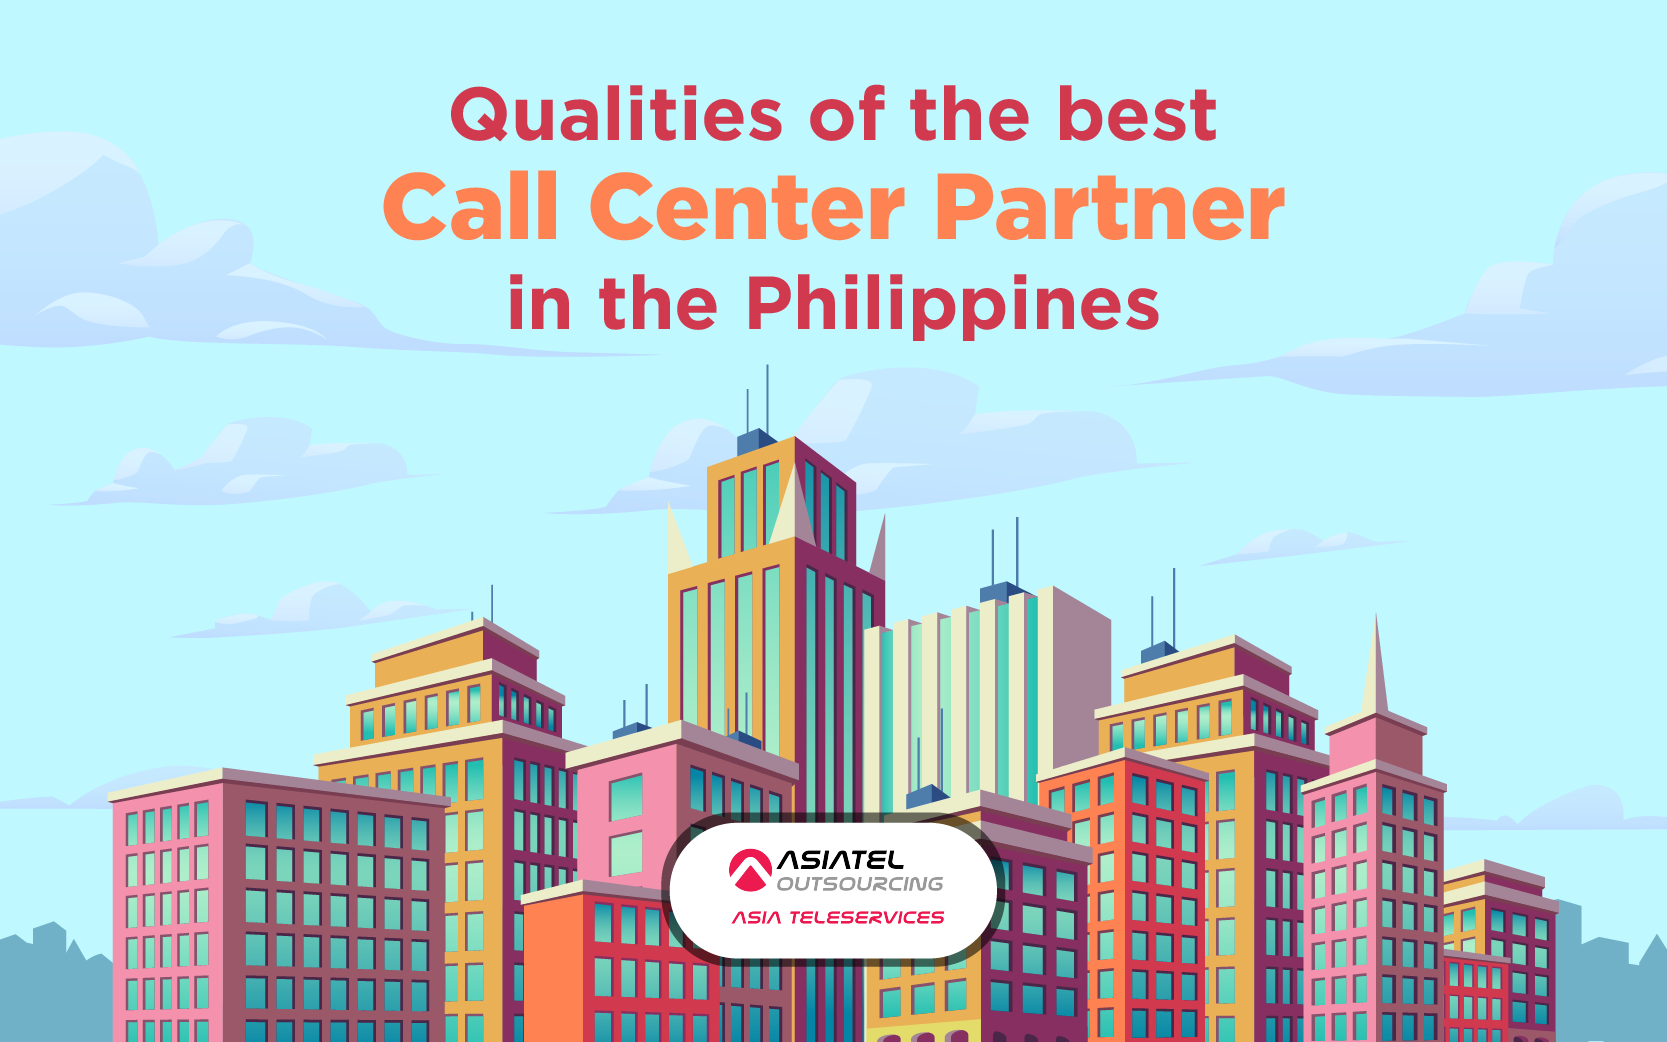 Qualities of the Best Call Center Partners in the Philippines